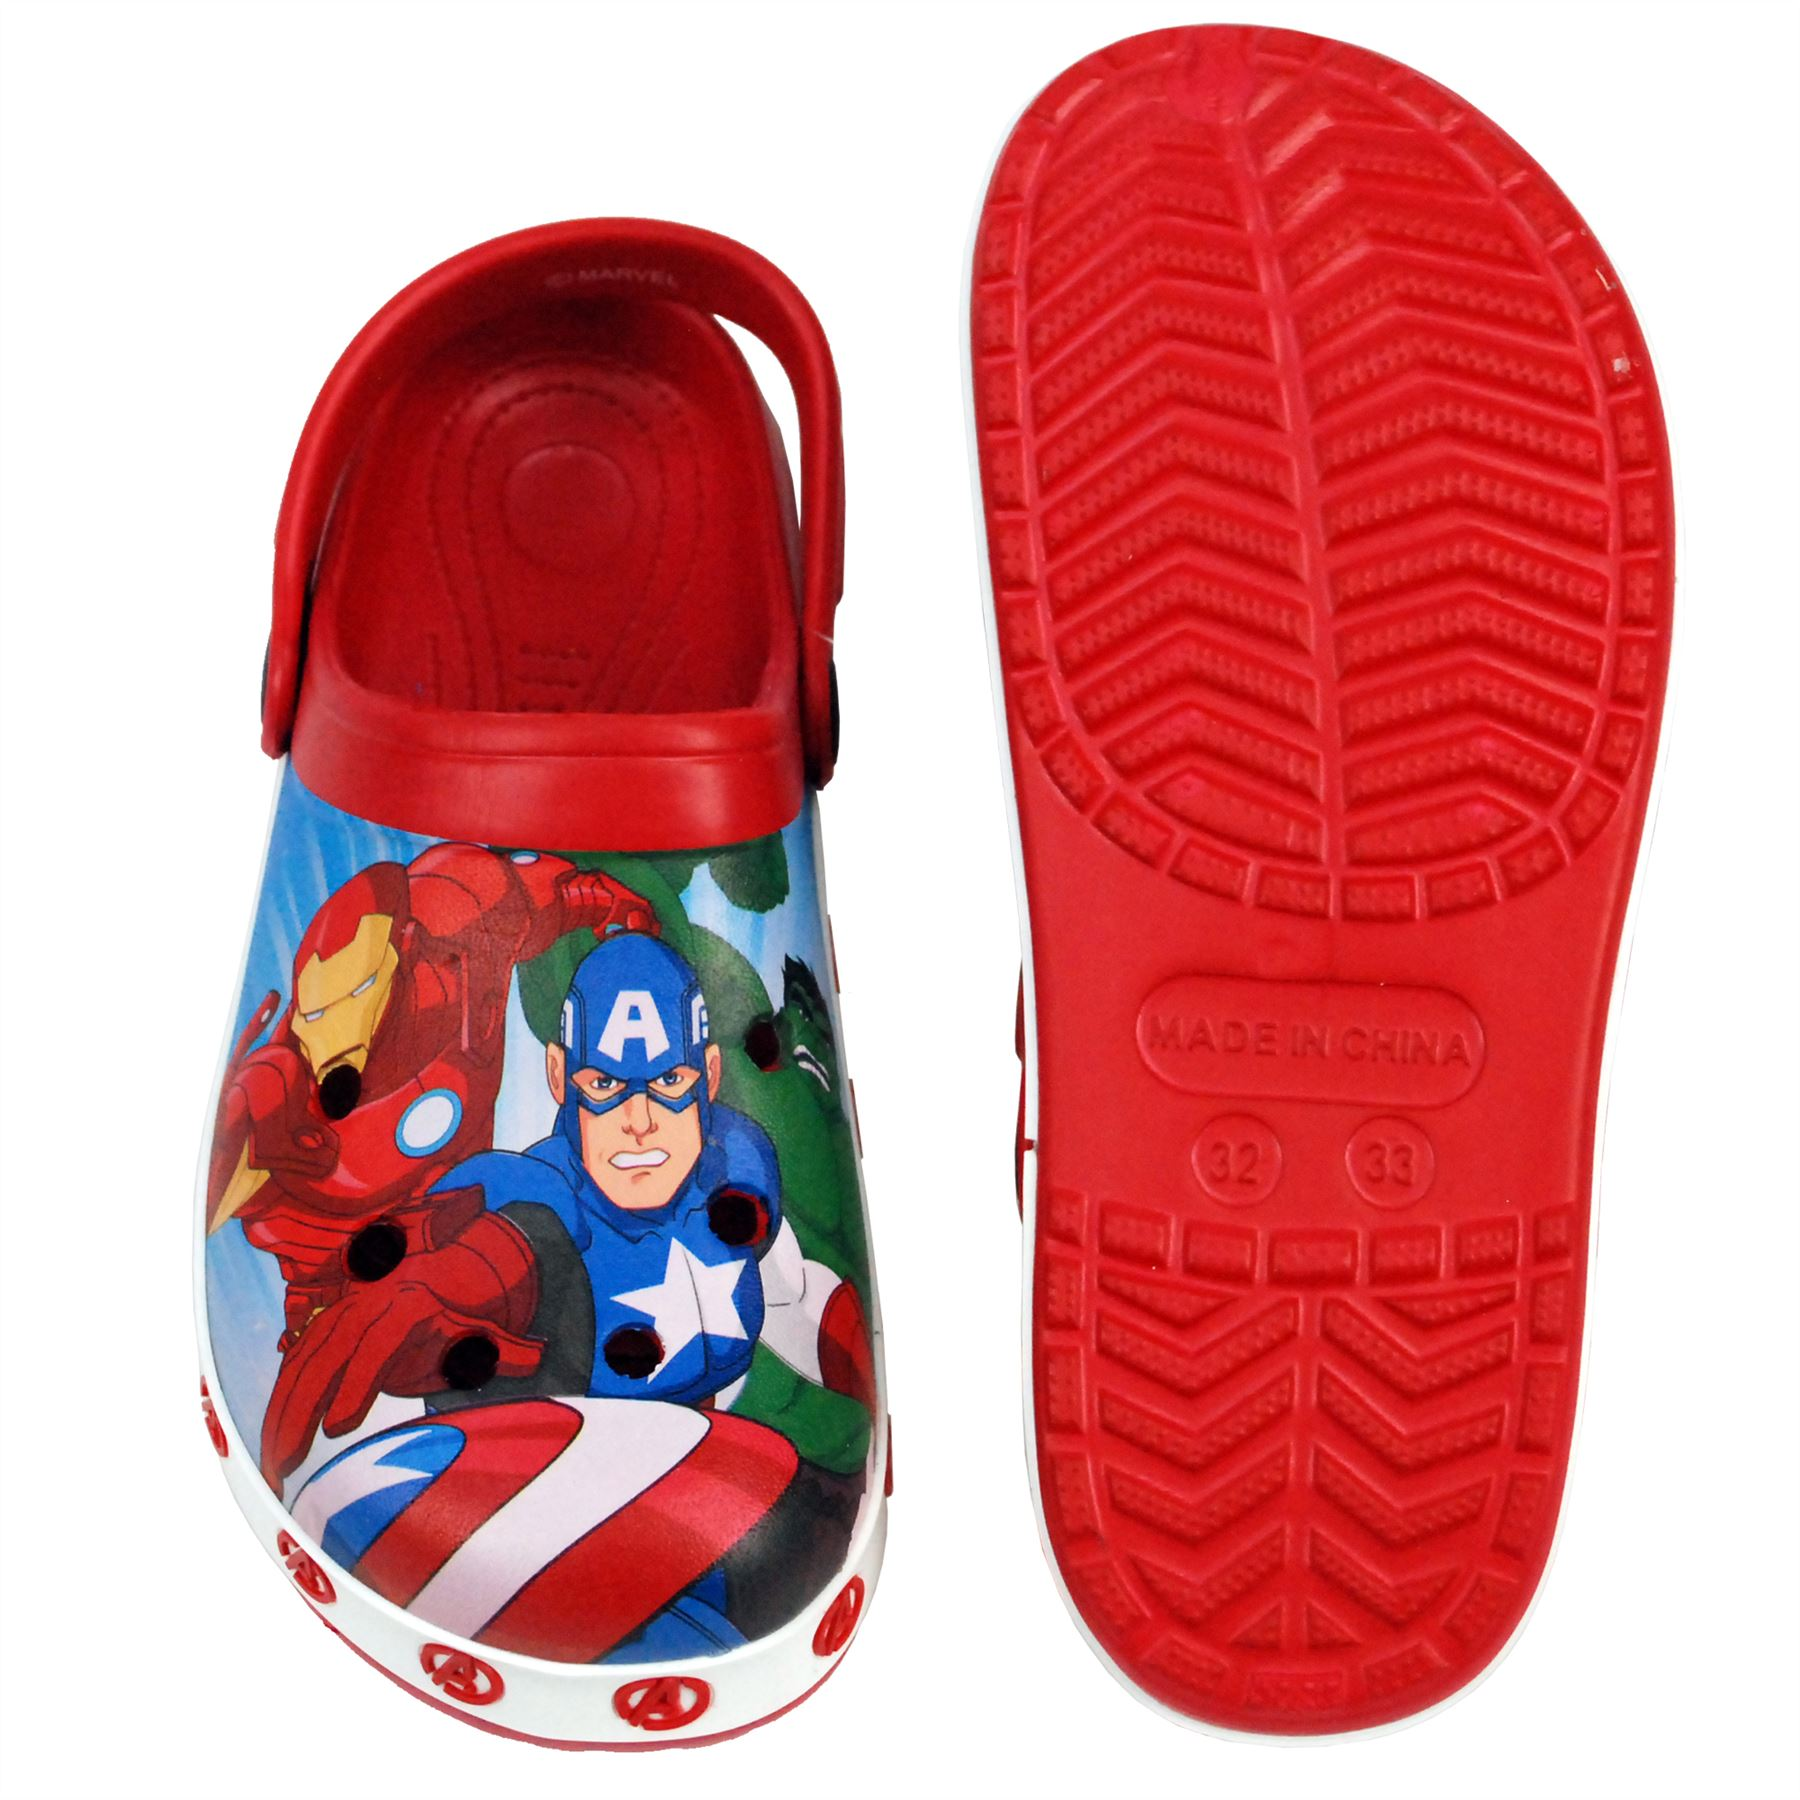 68ca9cb10dad4 Details about Marvel® Avenger Boys Sandals Swimming Pool Beach Slippers UK  Sizes